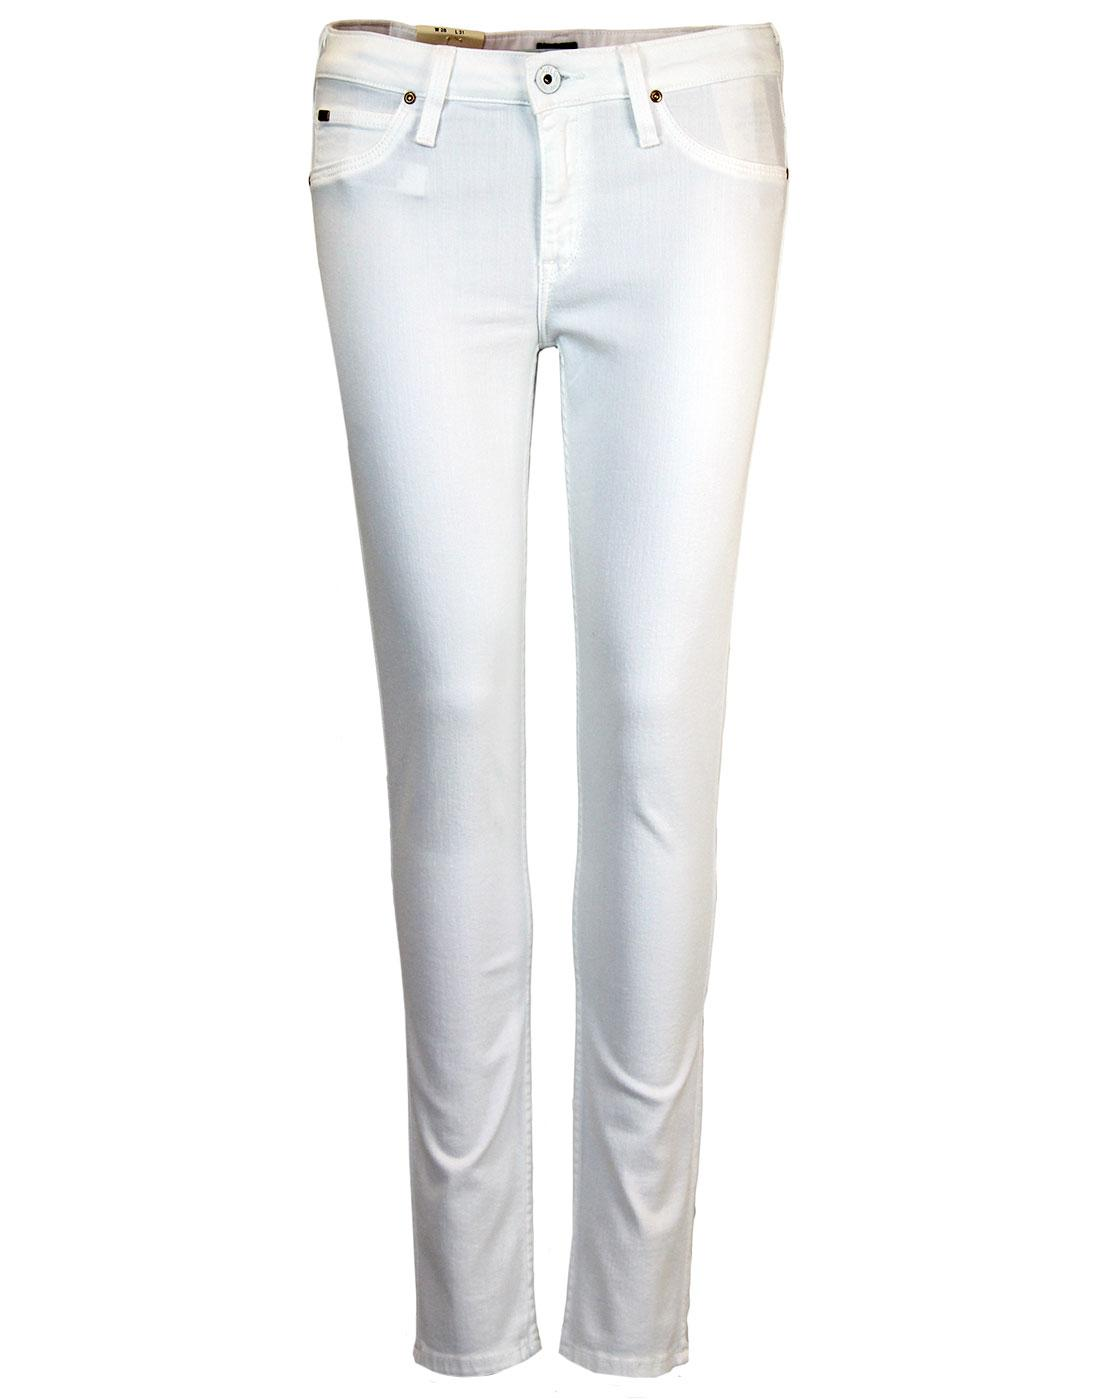 Scarlett LEE Retro Mod White Skinny Denim Jeans